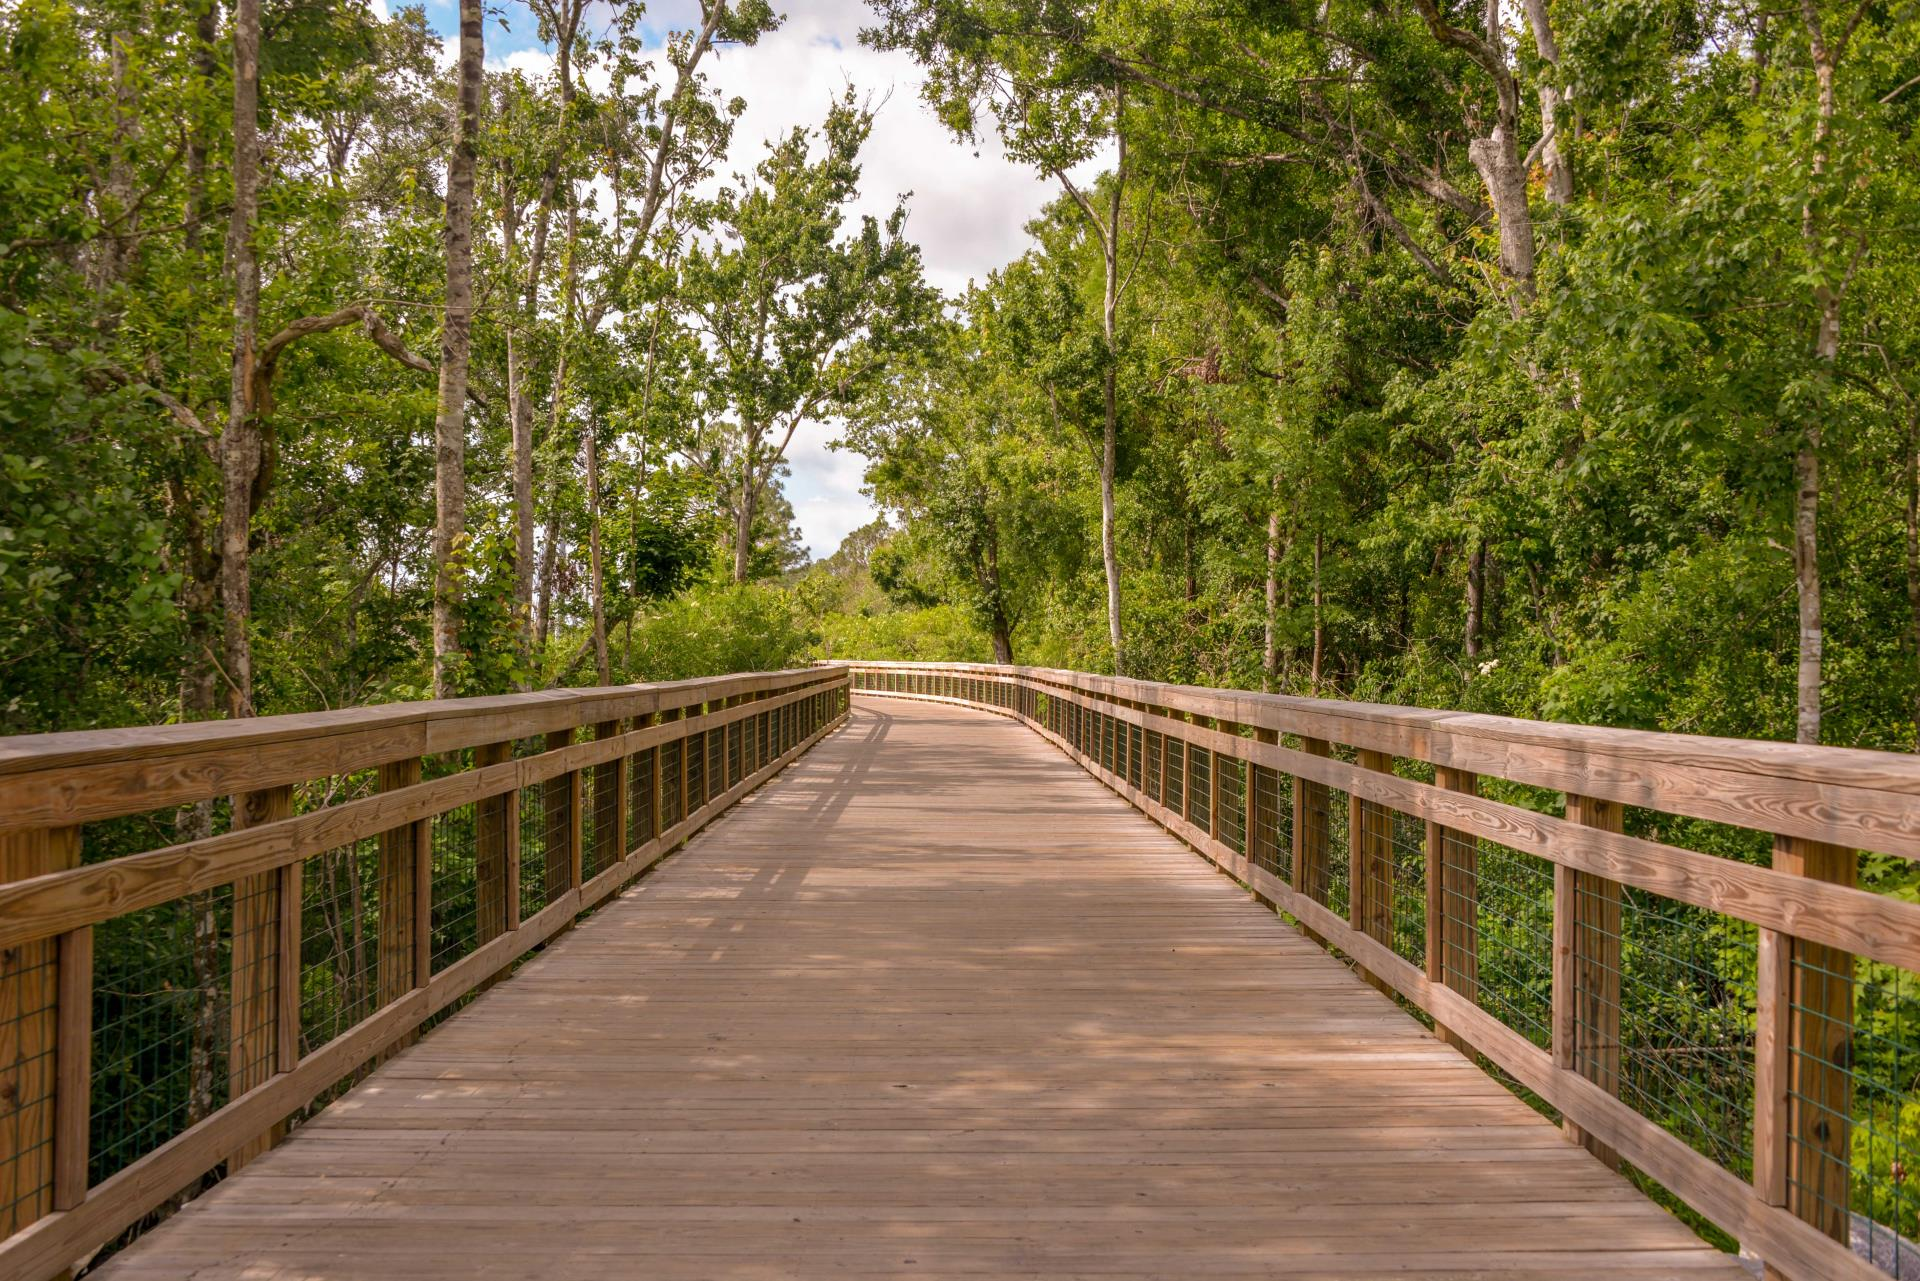 Shingle Creek Regional Trail board walk North segment.